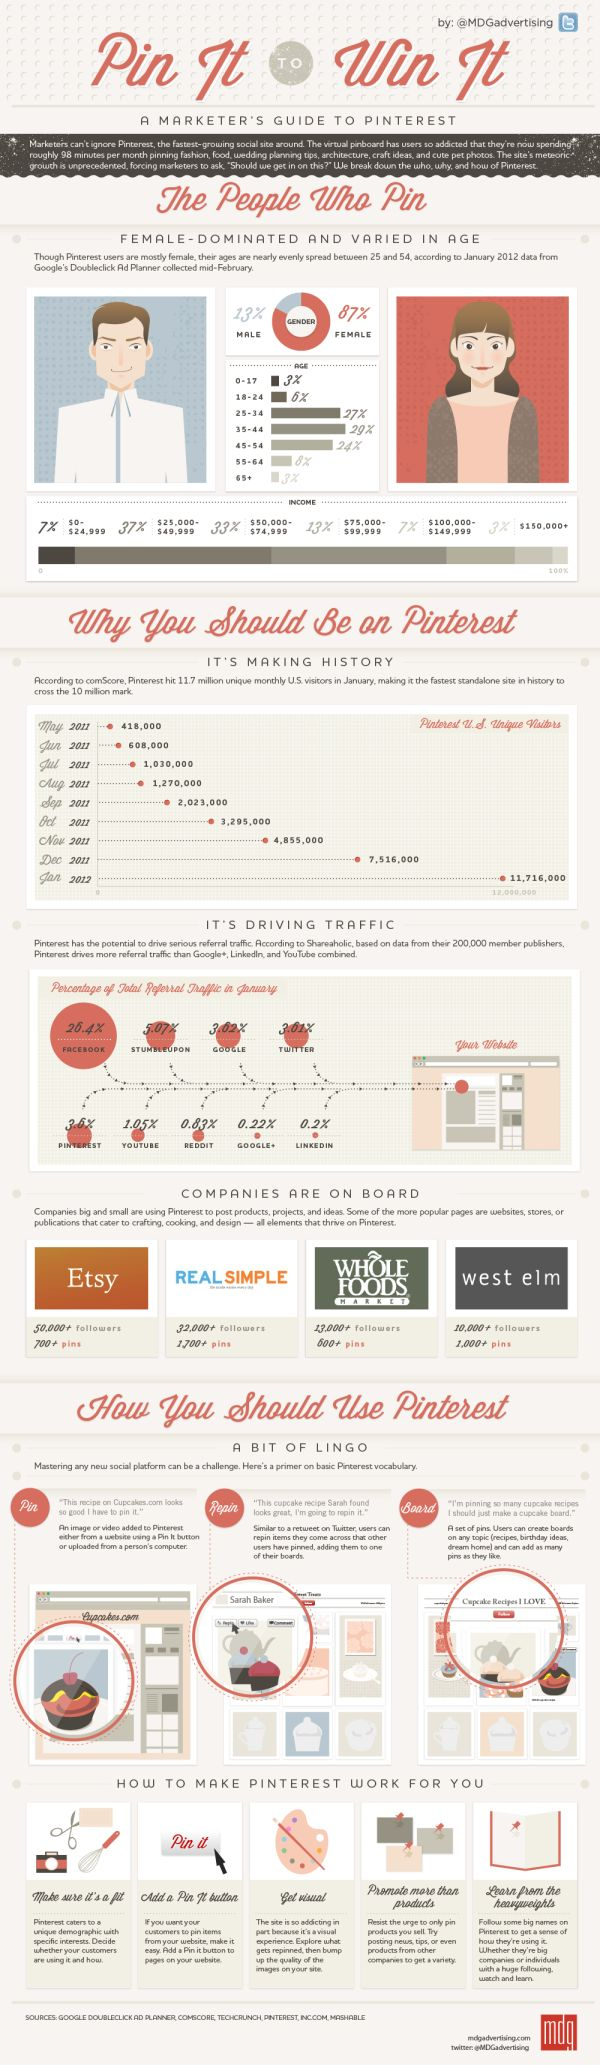 A Marketer's Guide to Pinterest, Video andInfographic